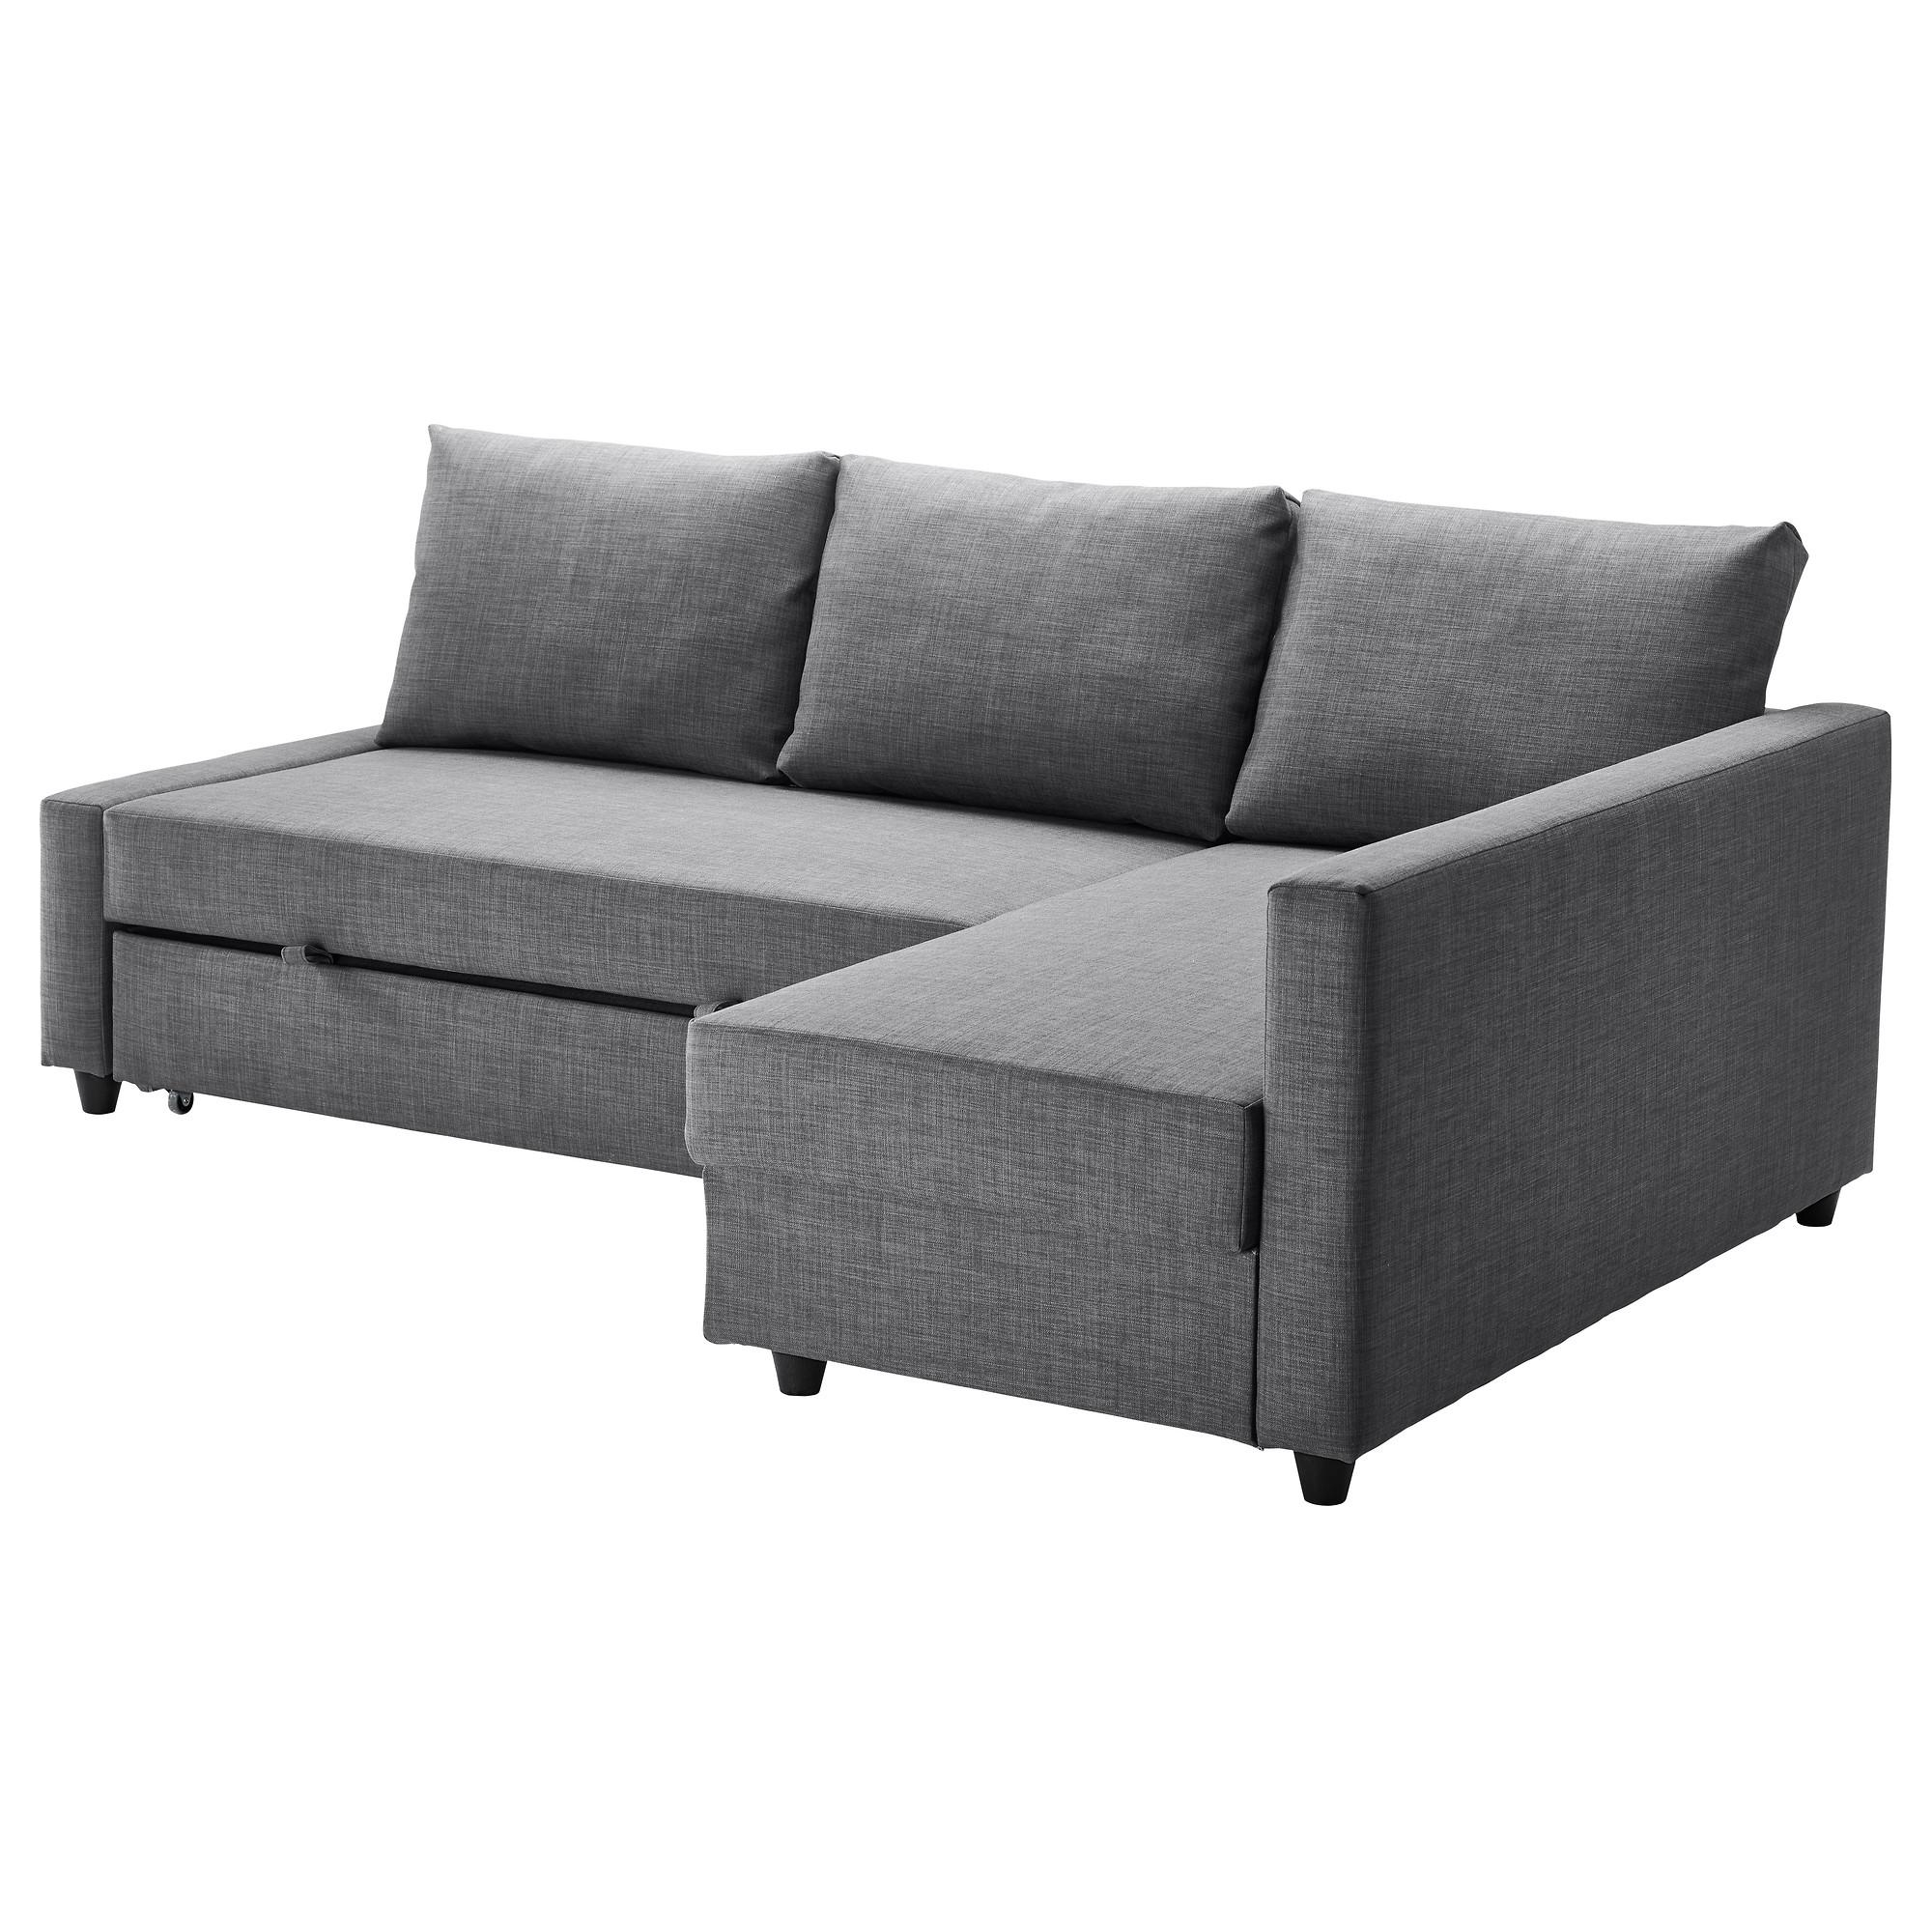 Featured Image of Sleeper Sectional Sofa Ikea